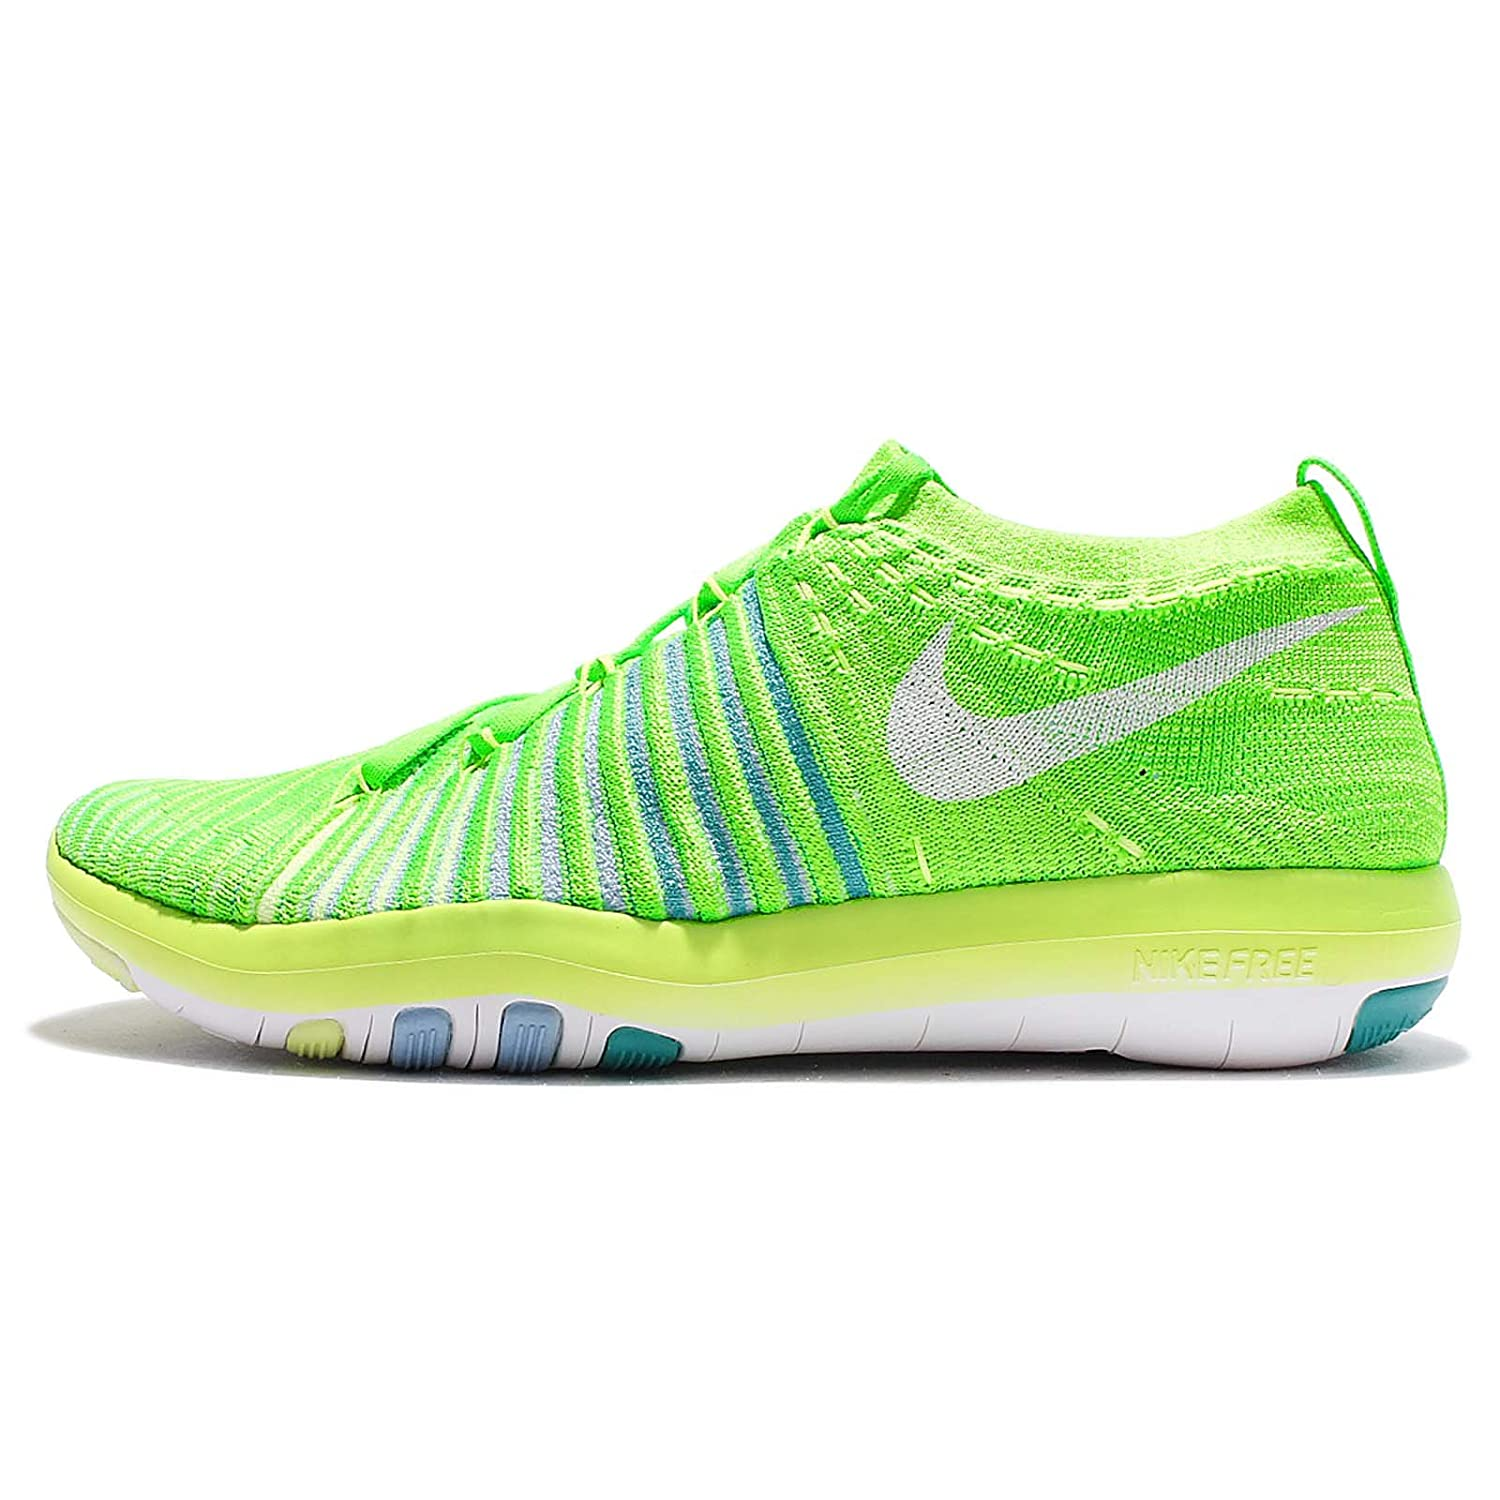 NIKE Womens Free Focus Flyknit Mesh Breathable Trainers B01HBY9IBY 8 B(M) US|Electric Green